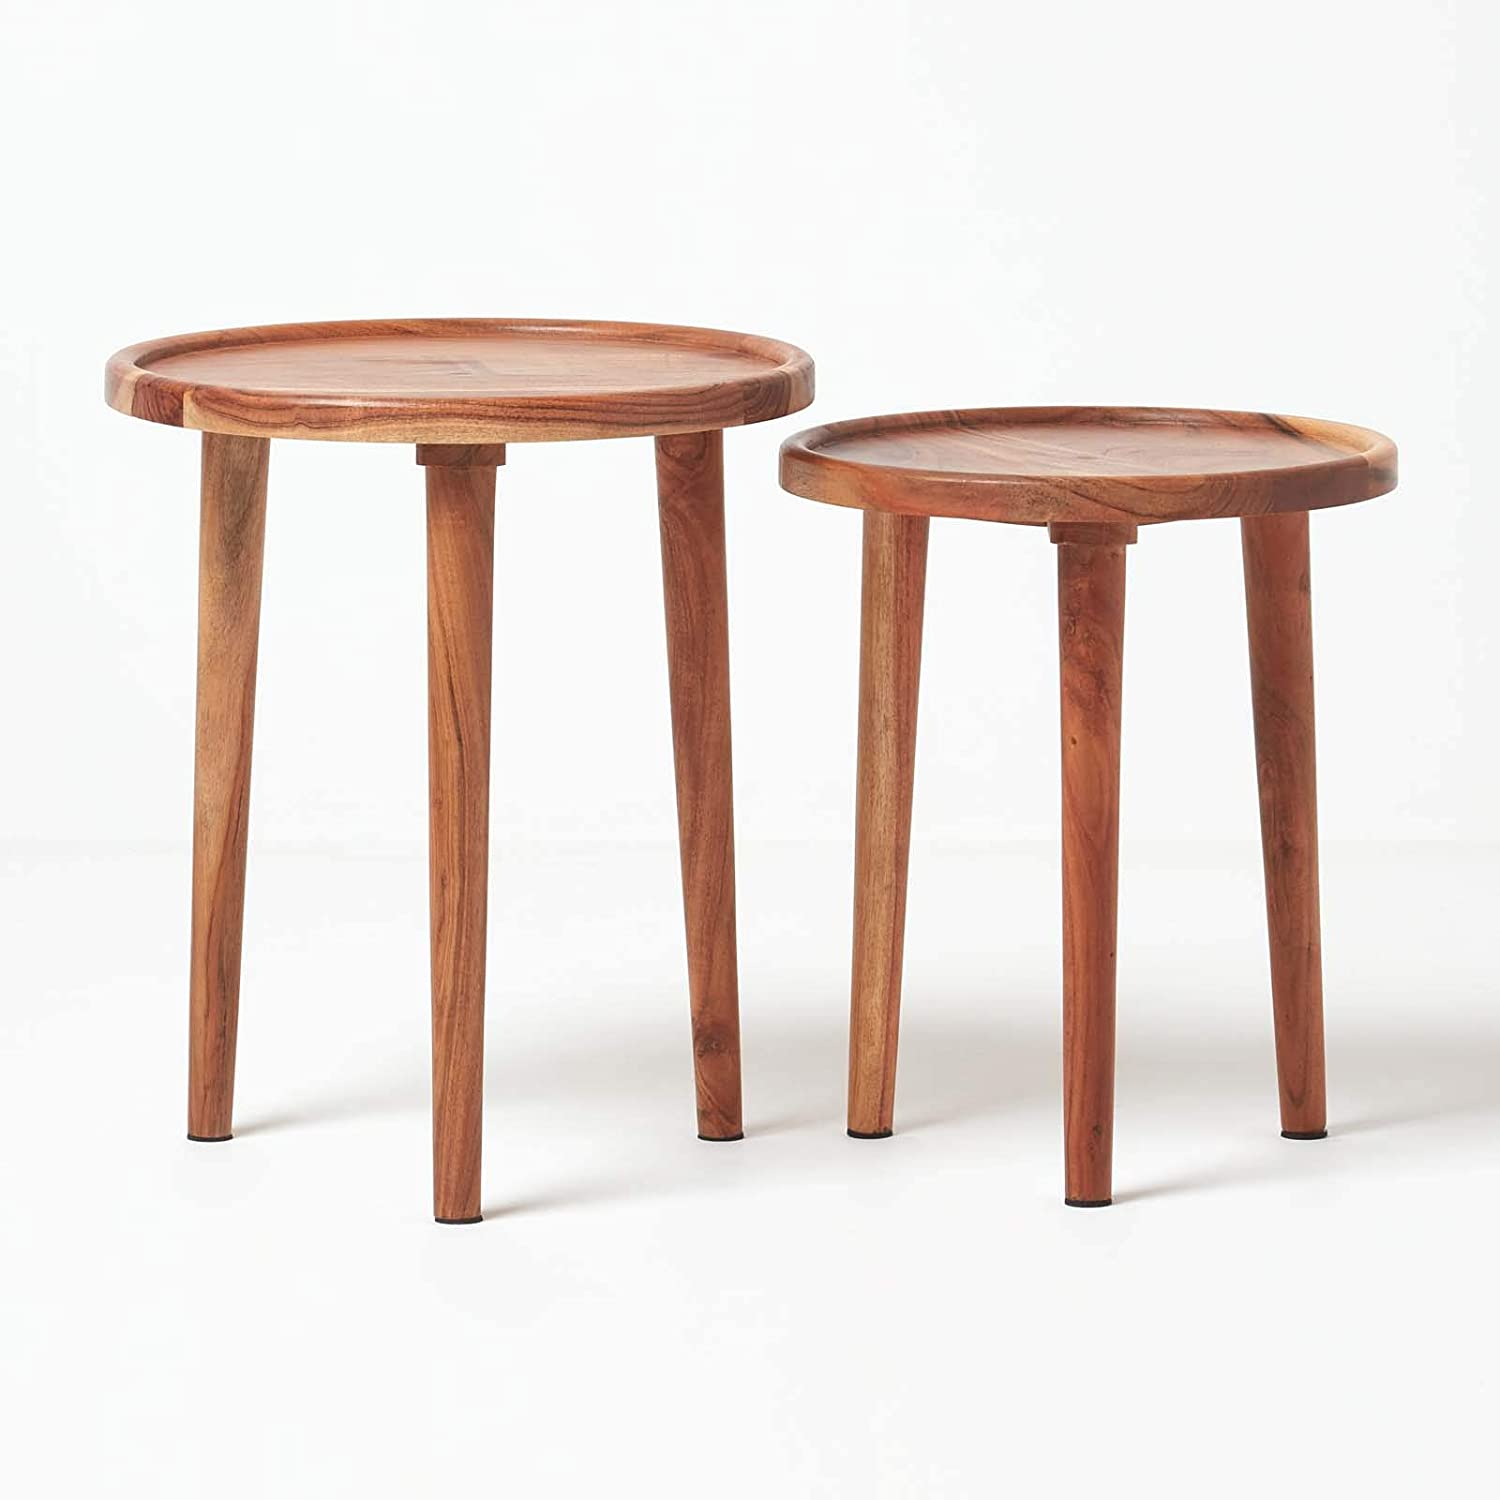 HOMESCAPES Dark Wood Soho Nest of 2 Tripod Tables Handcrafted From Solid Mango Wood With 3 Wooden Legs Modern Style Space Saving Compact Side Tables or Coffee Tables H 47cm x W 40cm